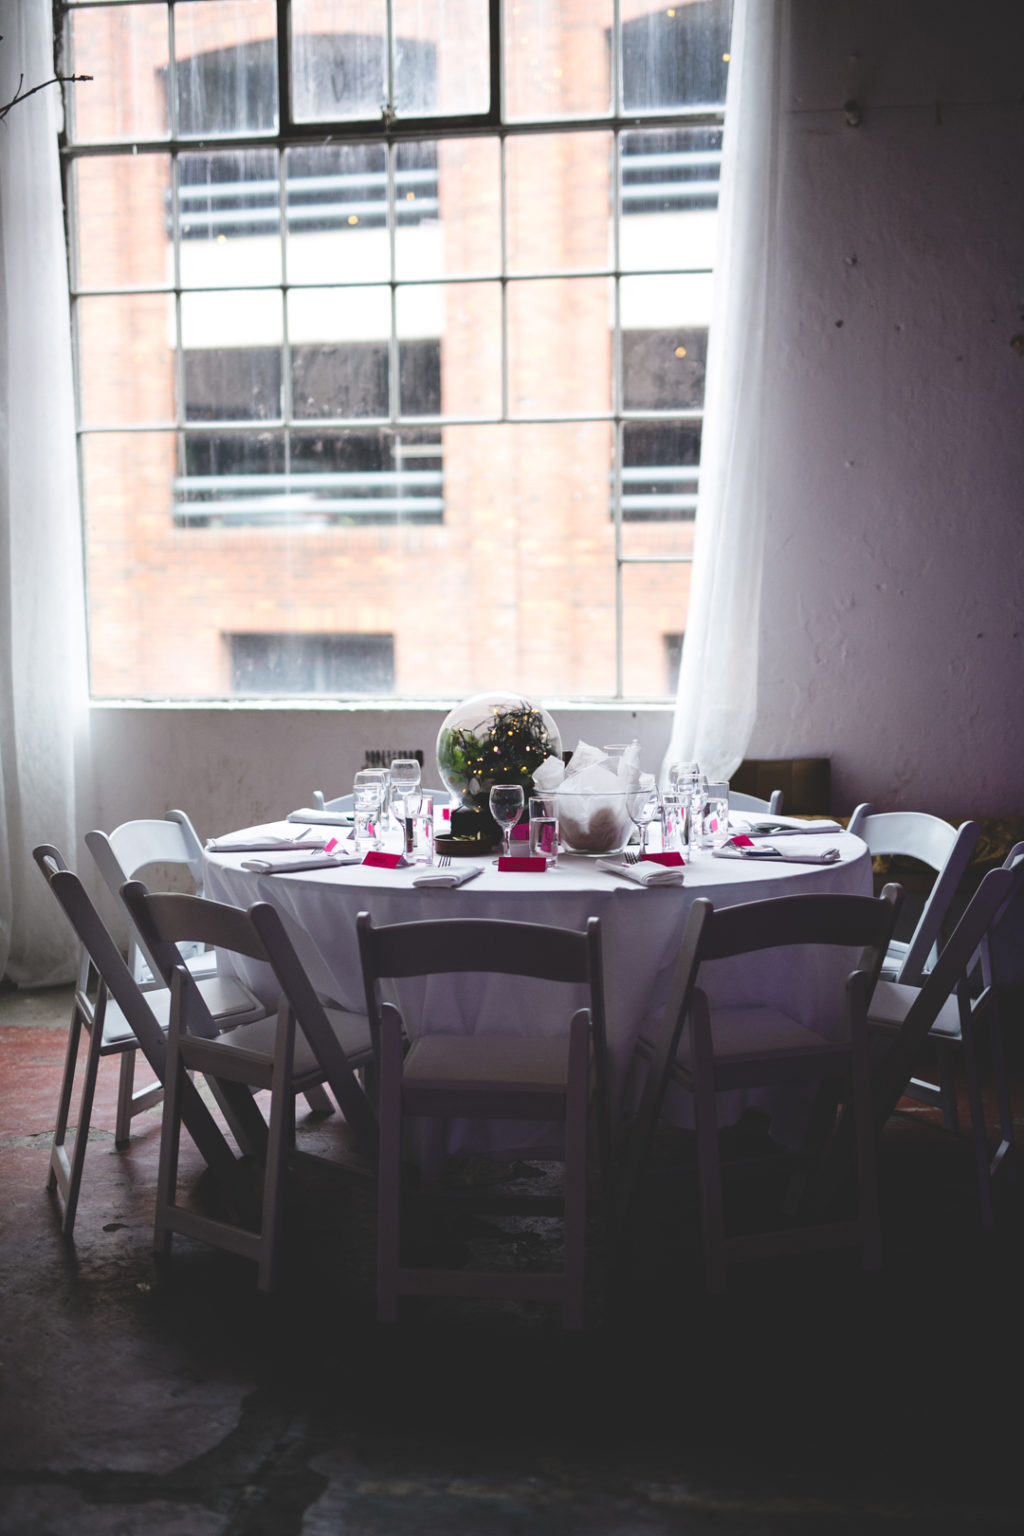 The wedding tables were done with greenery and lights, bright fuchsia touches